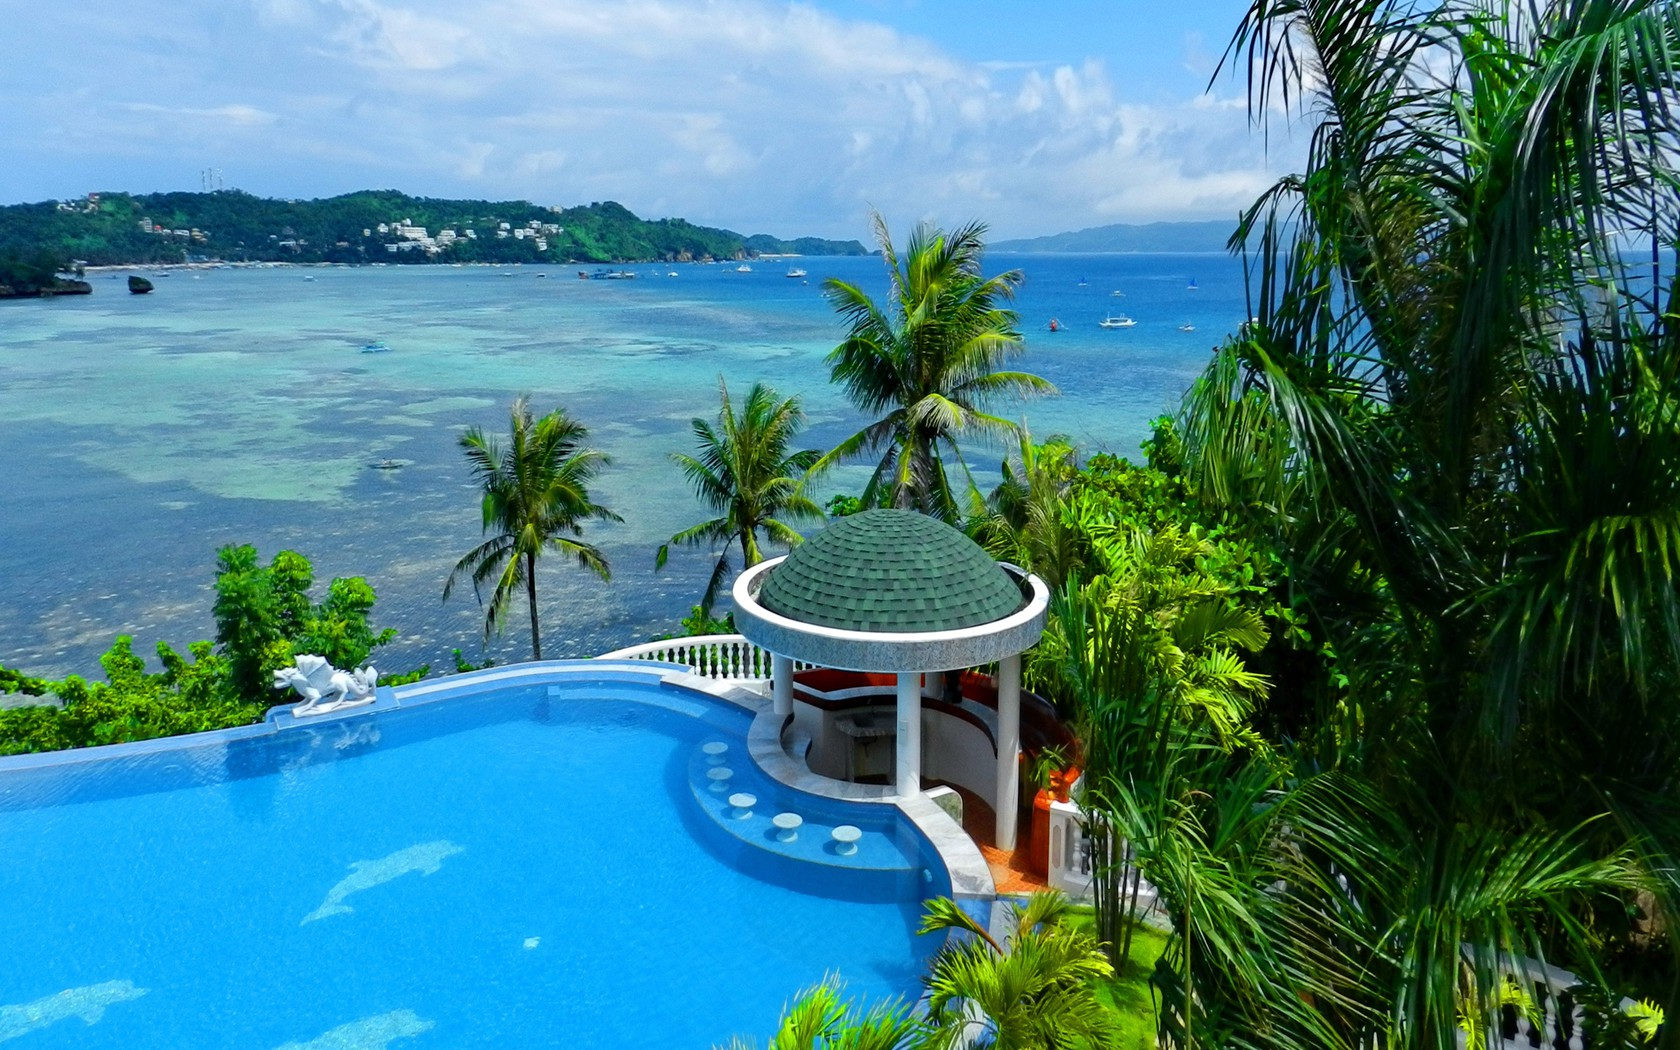 Hd Tropical Island Beach Paradise Wallpapers And Backgrounds: Tropical View Wallpaper